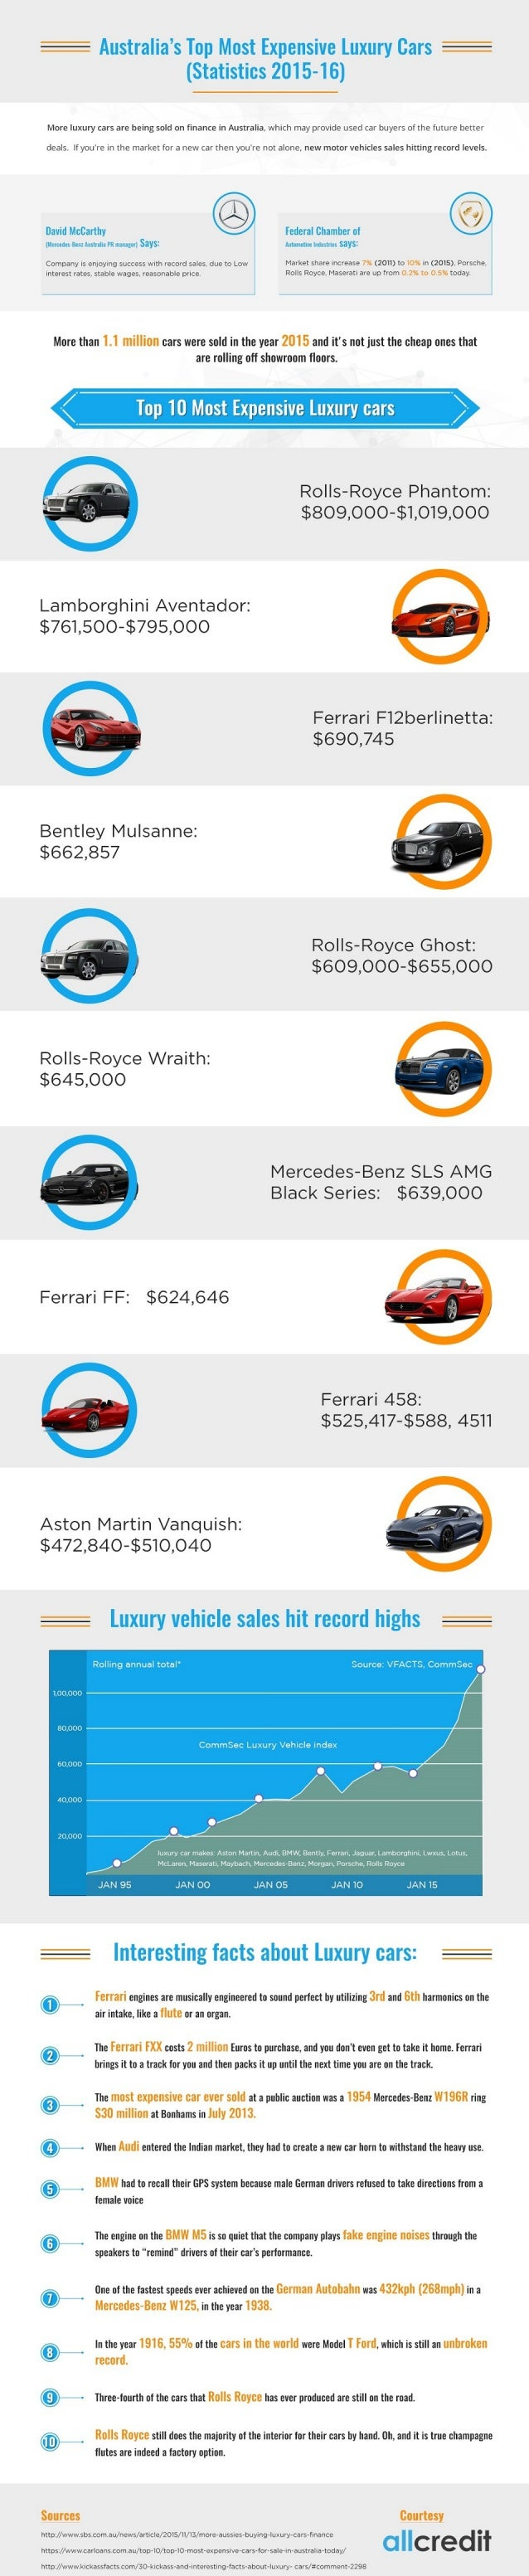 Top 10 Most Expensive Luxury Car Brands In Australia 2016